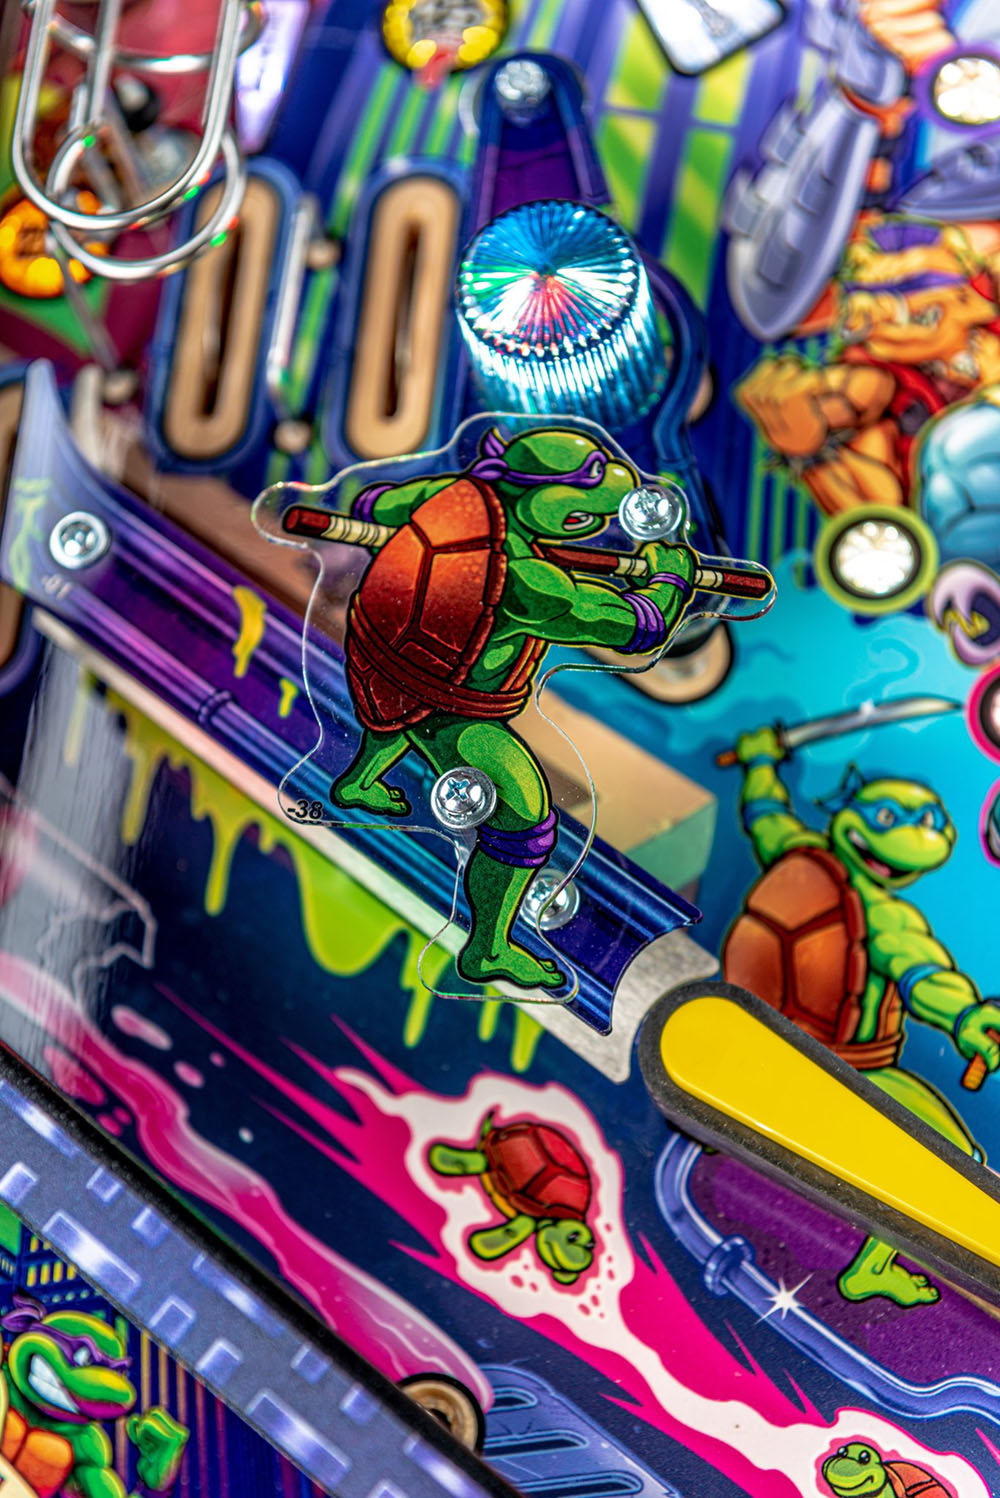 Teenage Mutant Ninja Turtles Premium Pinball Machine - Flipper Decoration